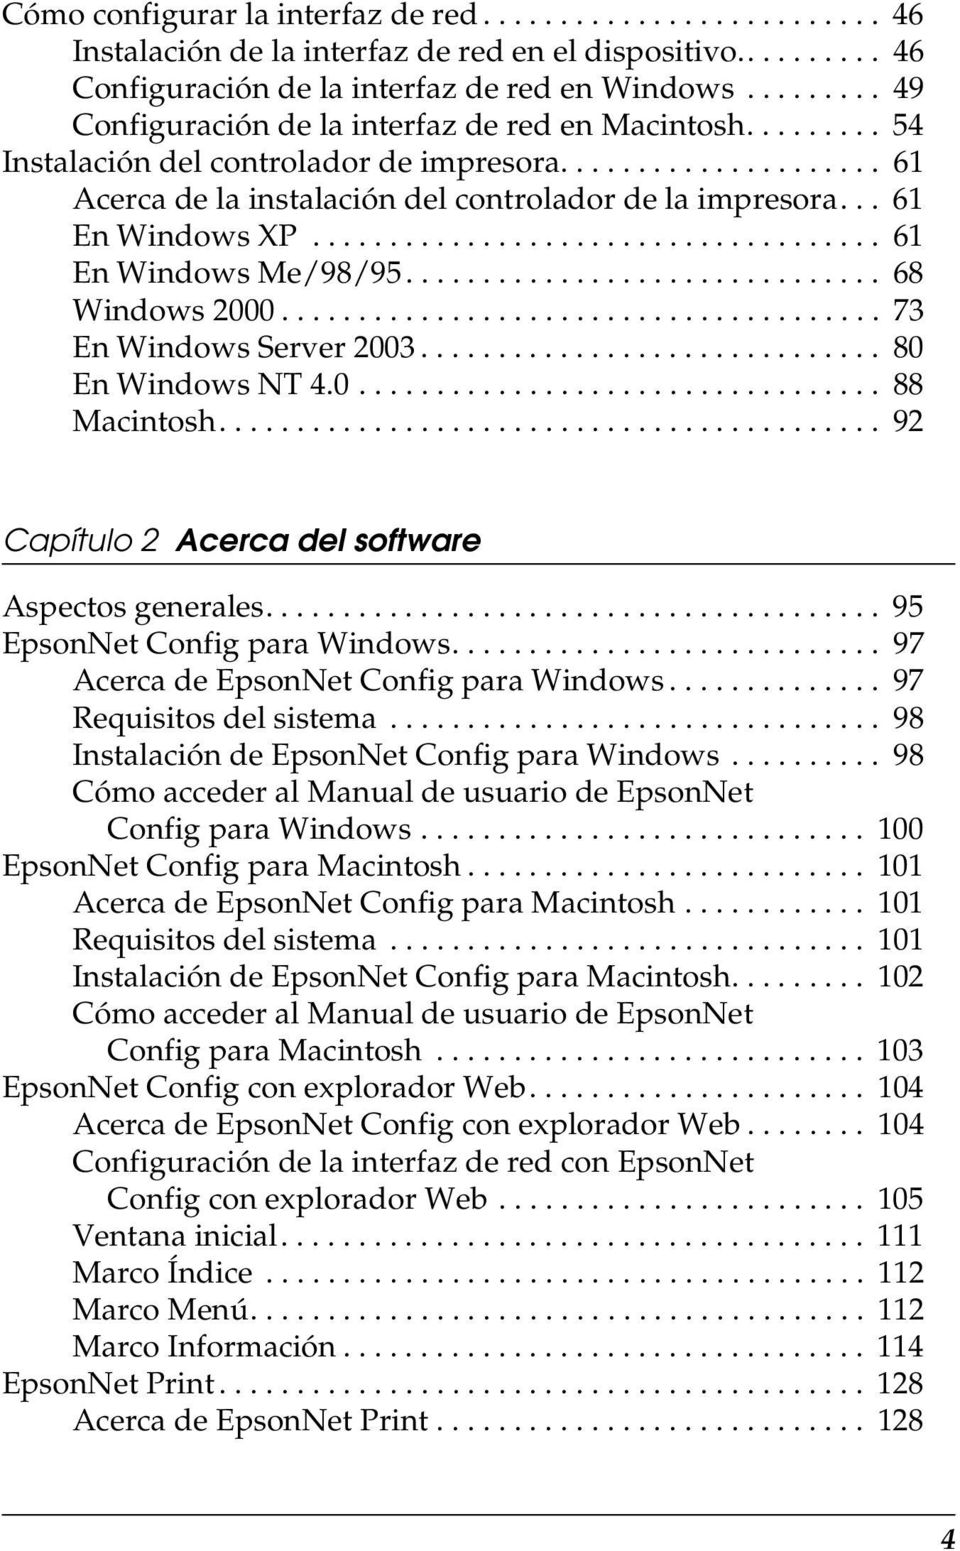 .. 61 En Windows XP..................................... 61 En Windows Me/98/95............................... 68 Windows 2000....................................... 73 En Windows Server 2003.